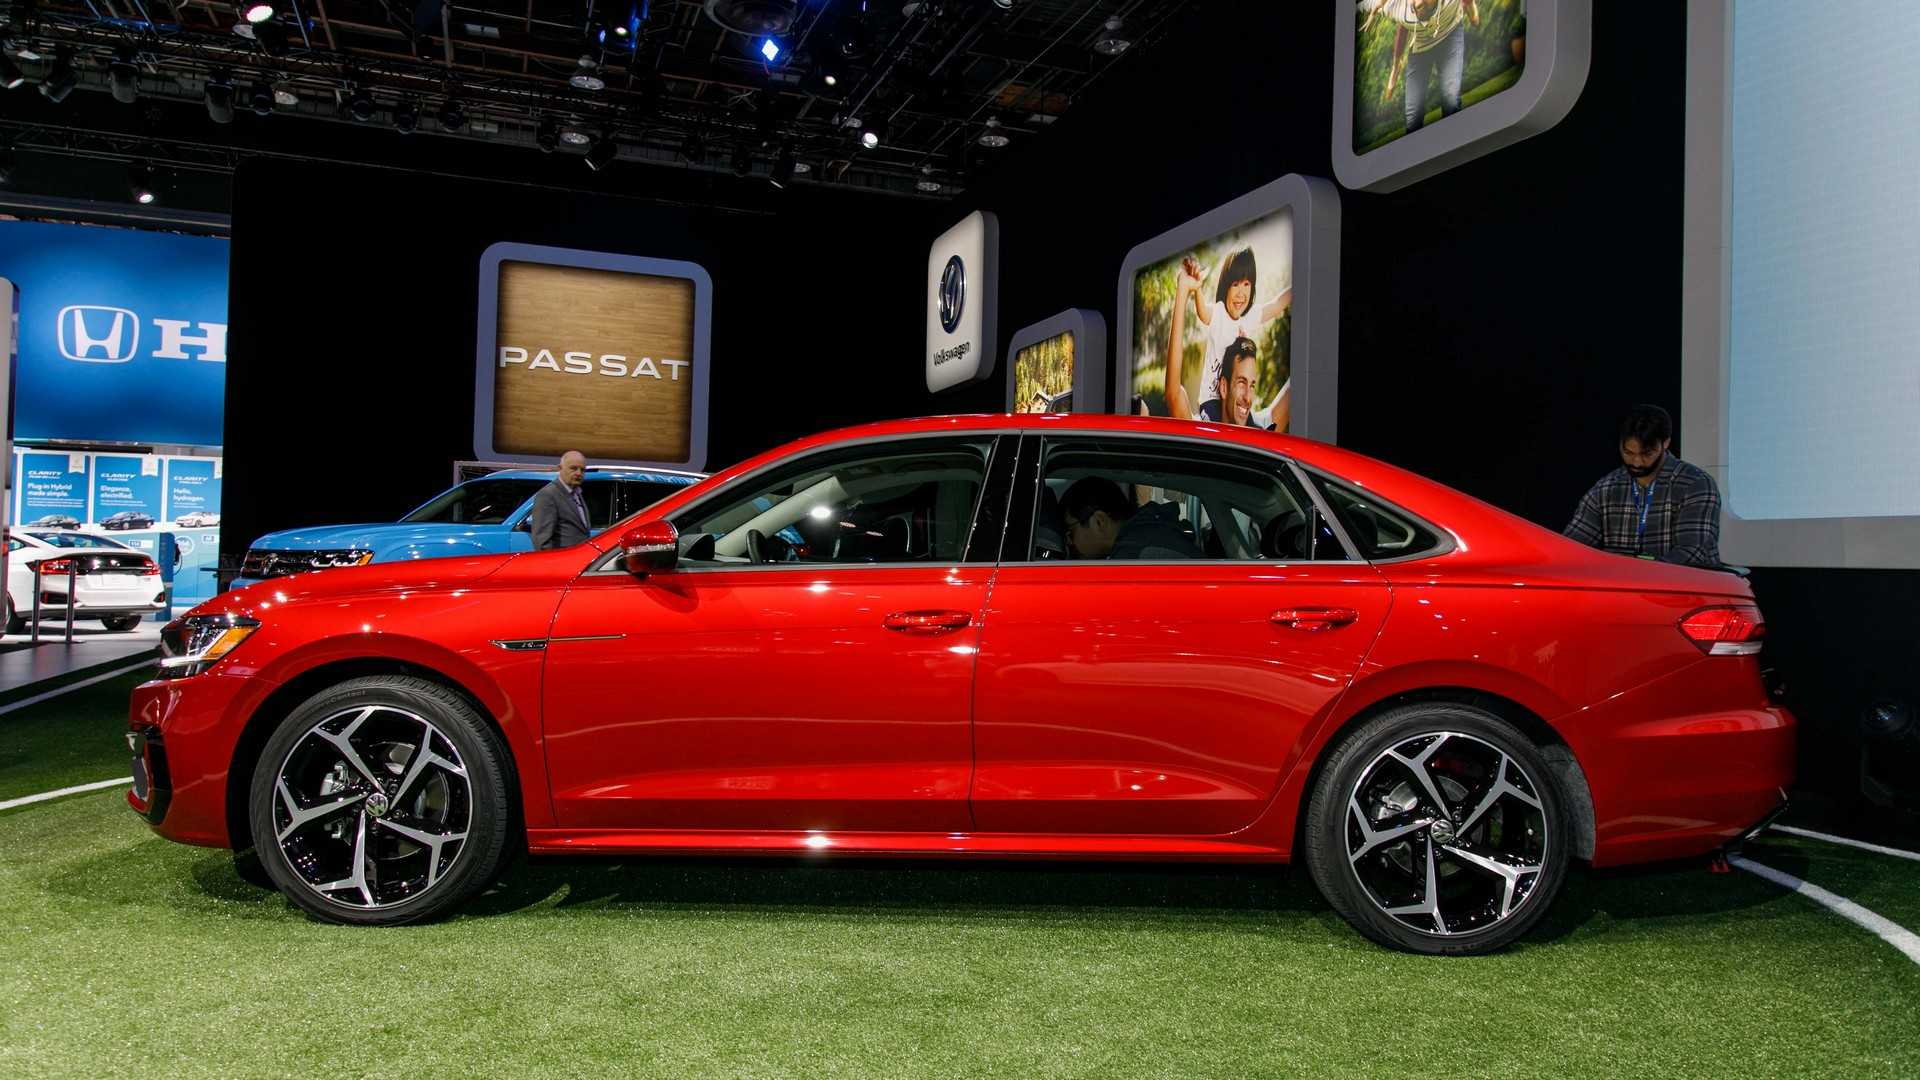 95 The Best 2020 Vw Passat Price And Review